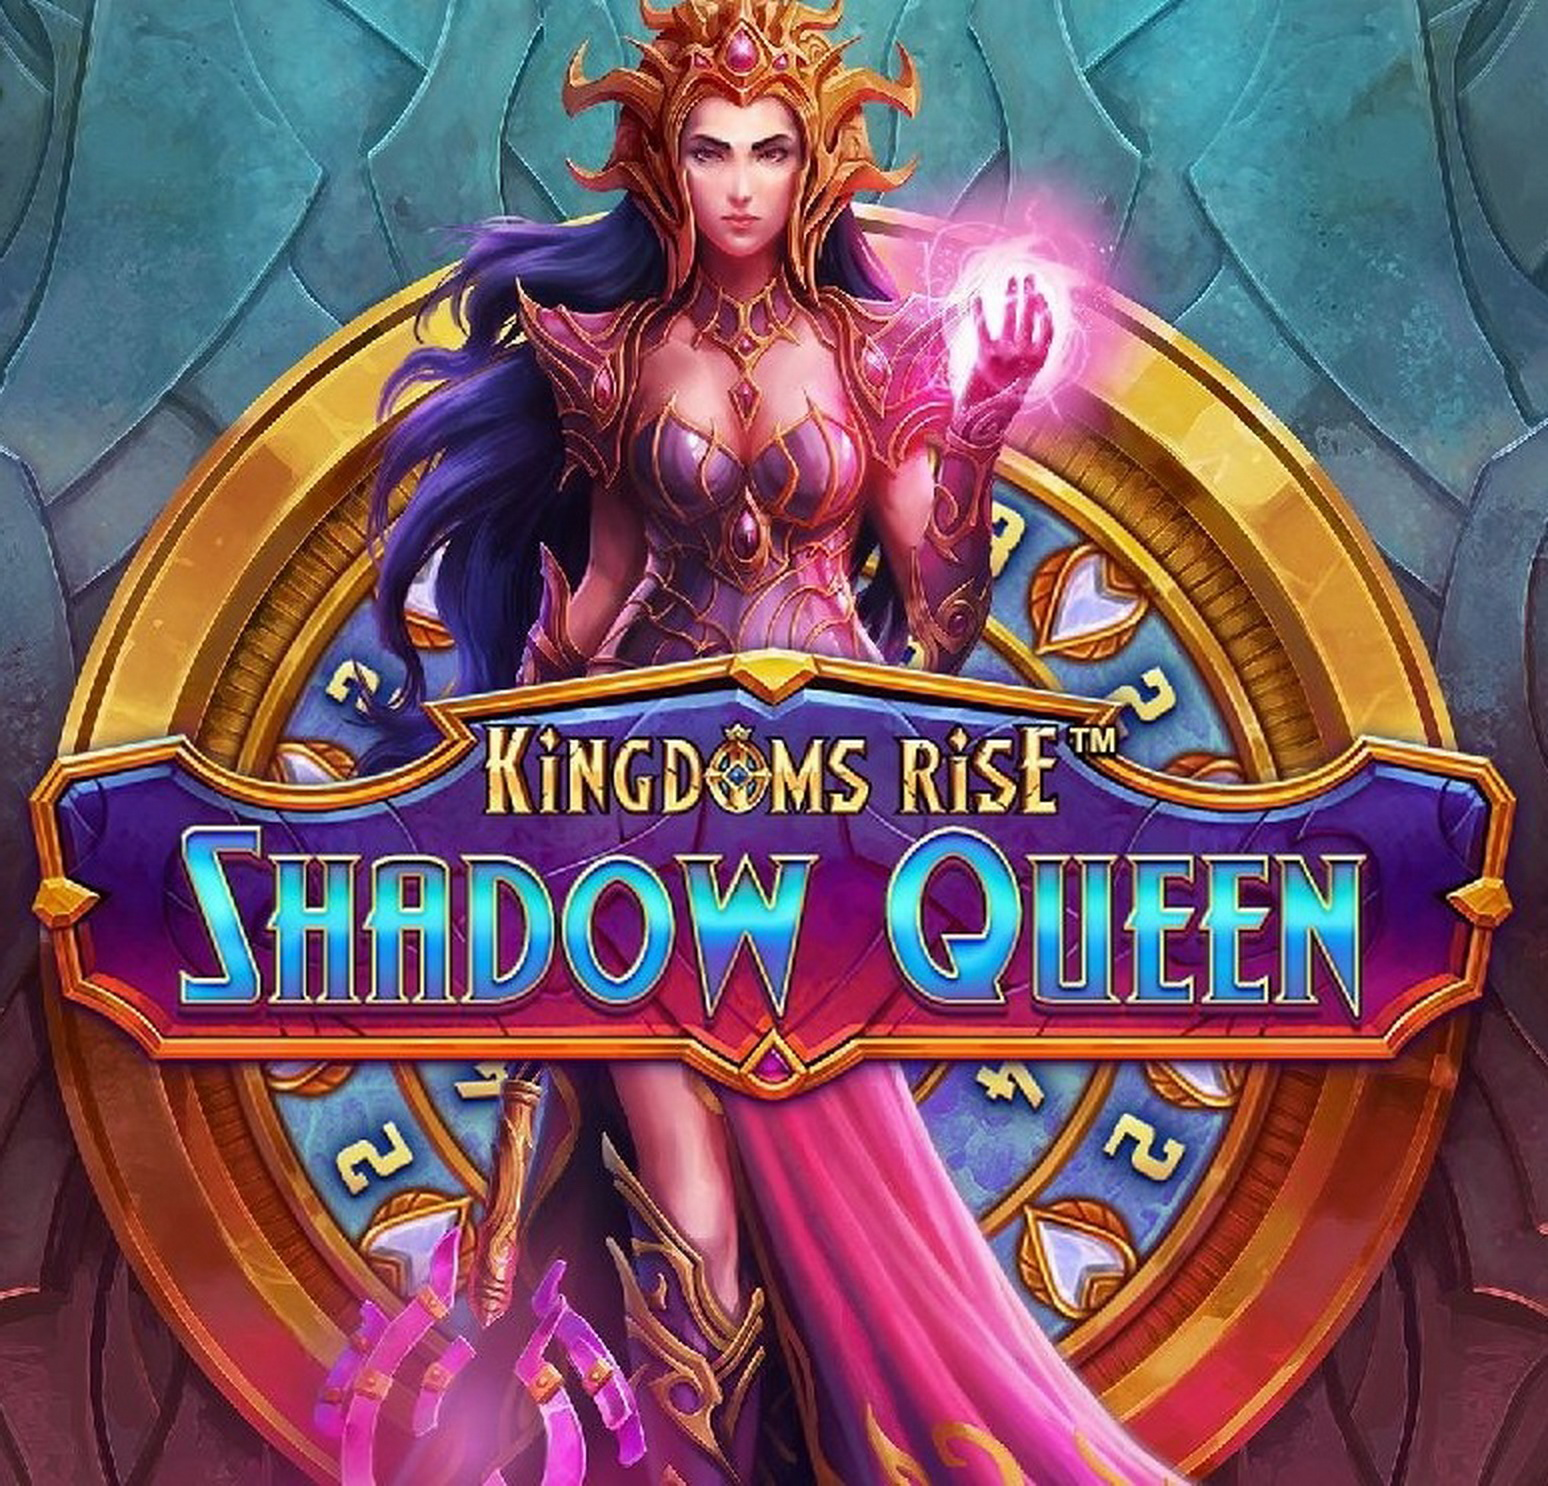 The Kingdoms Rise Shadow Queen Online Slot Demo Game by Ash Gaming